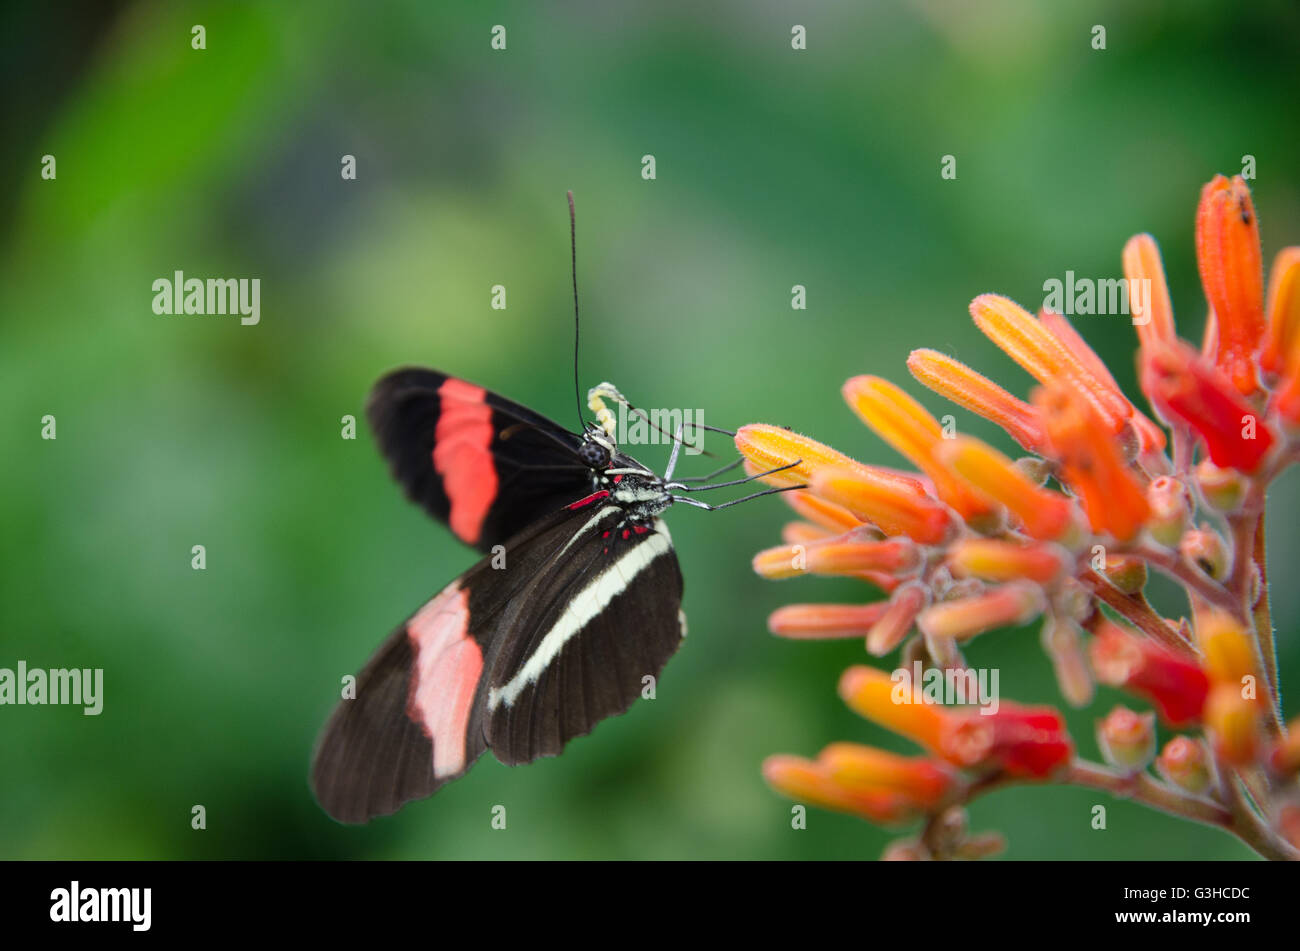 Heliconius erato butterfly sitting on a flower - Stock Image